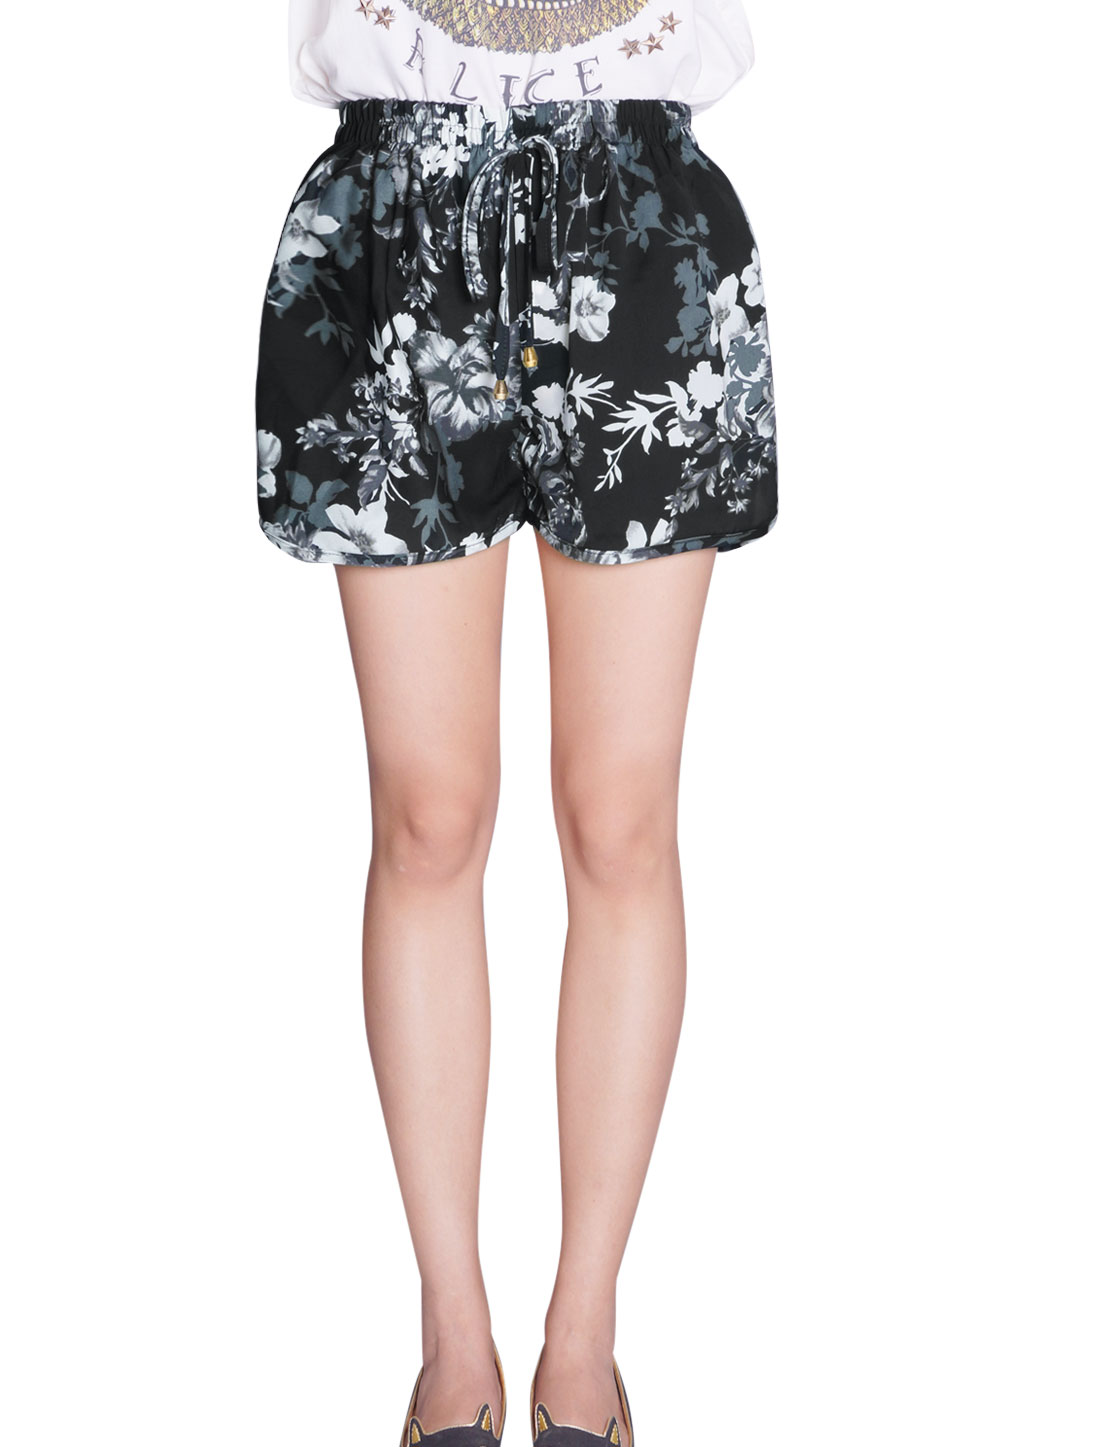 Lady Elastic Drawstring Waist Floral Prints Loose Fit Casual Shorts Black XS